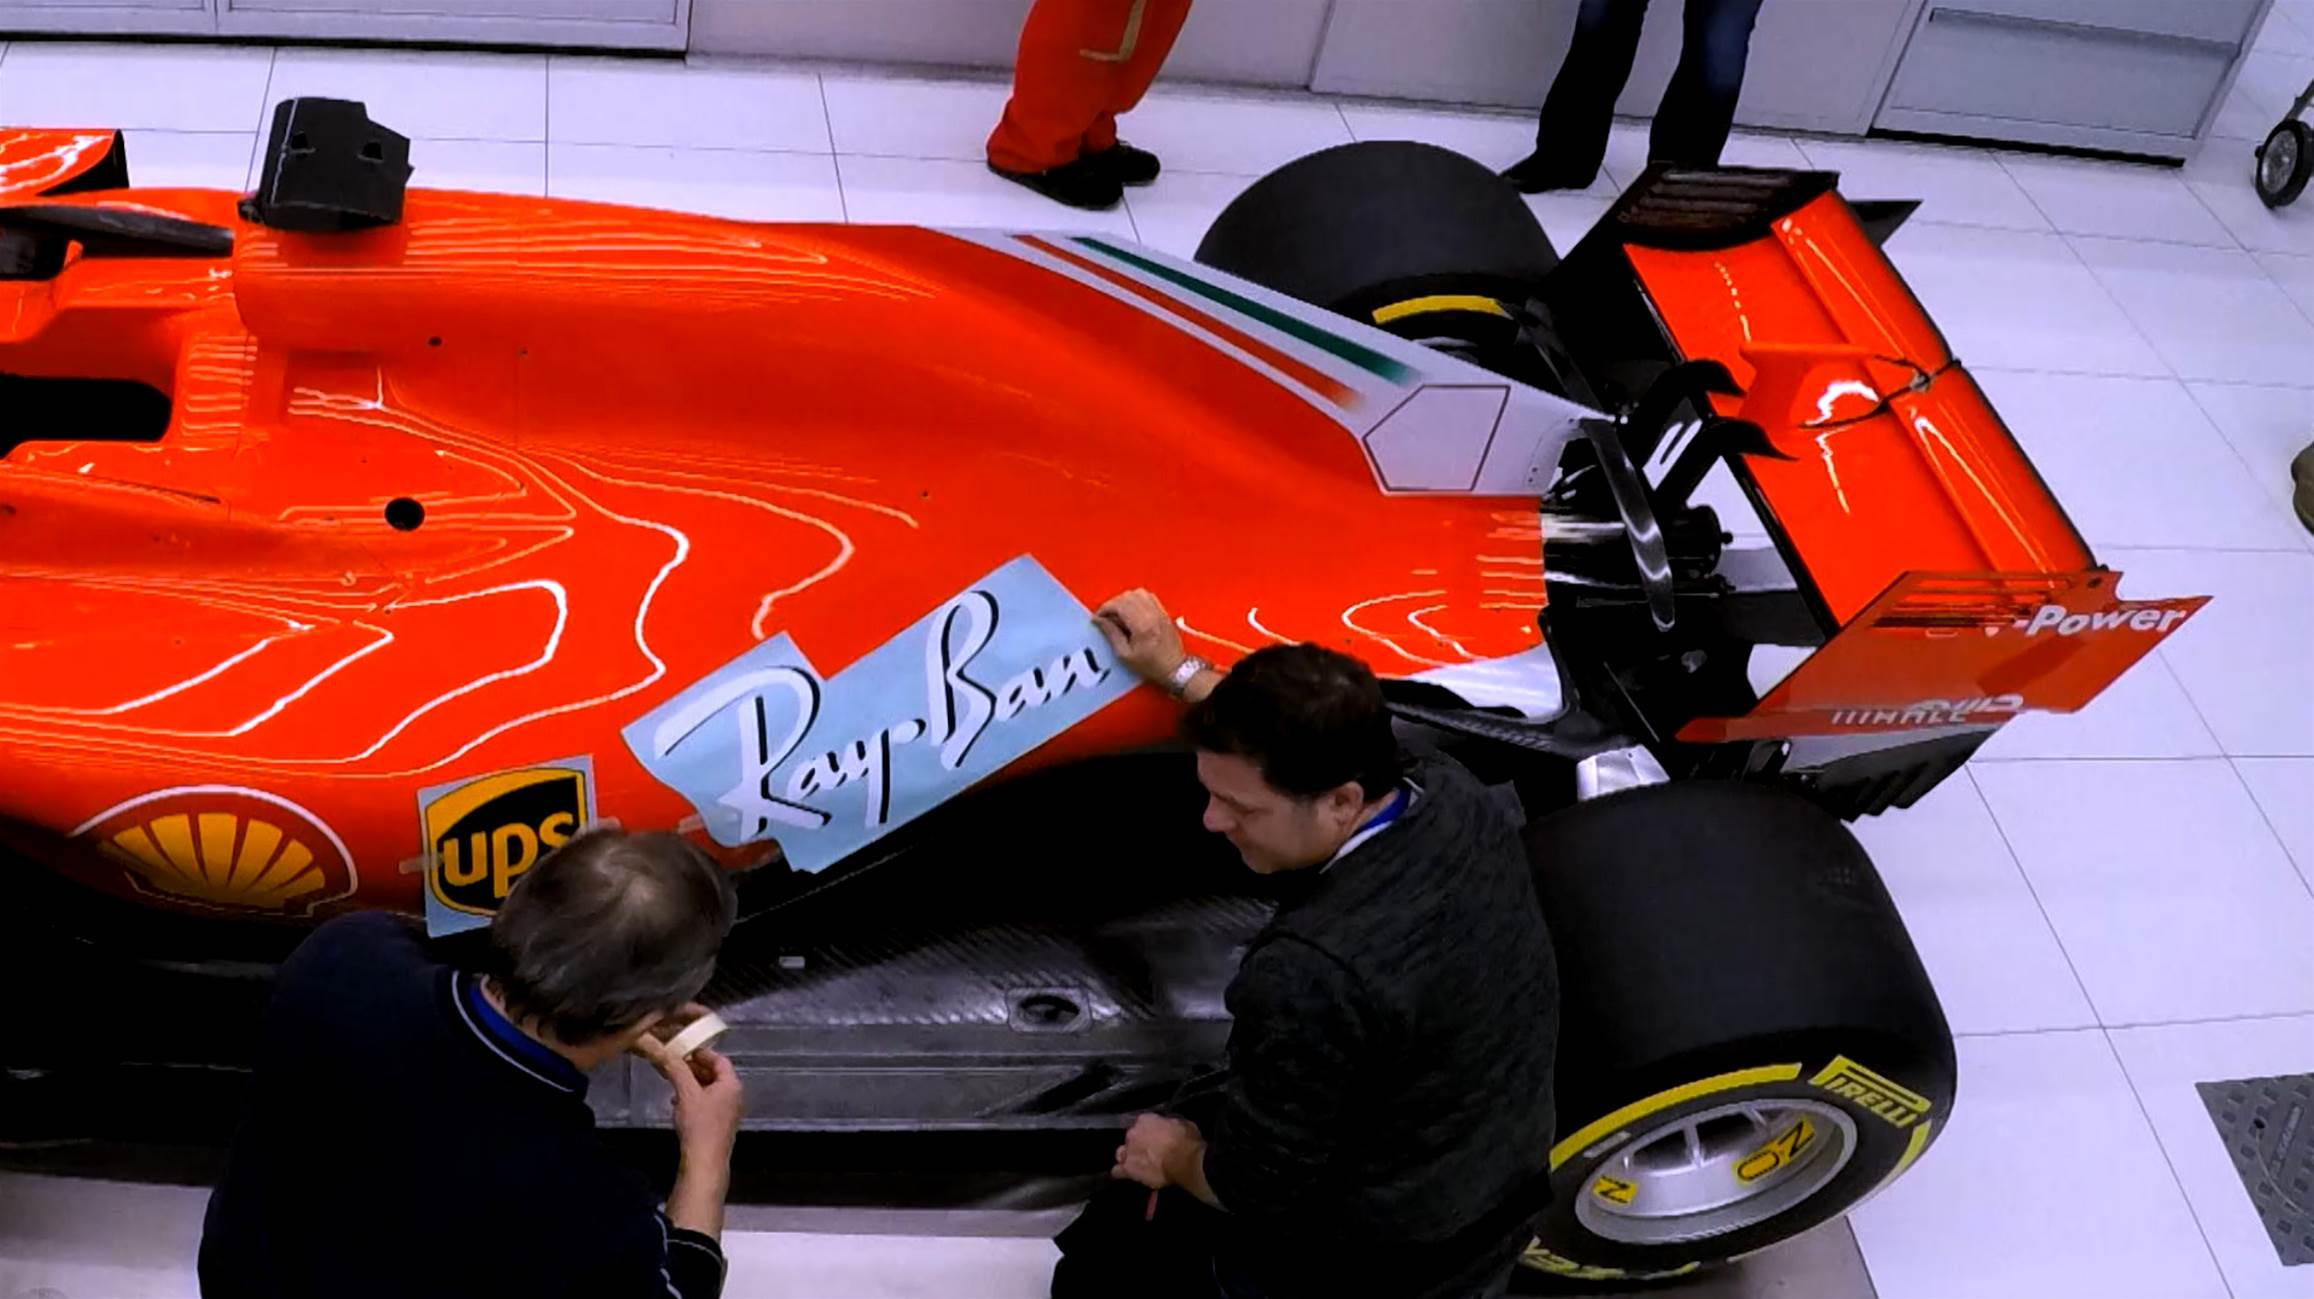 Stickering the new F1 Ferrari